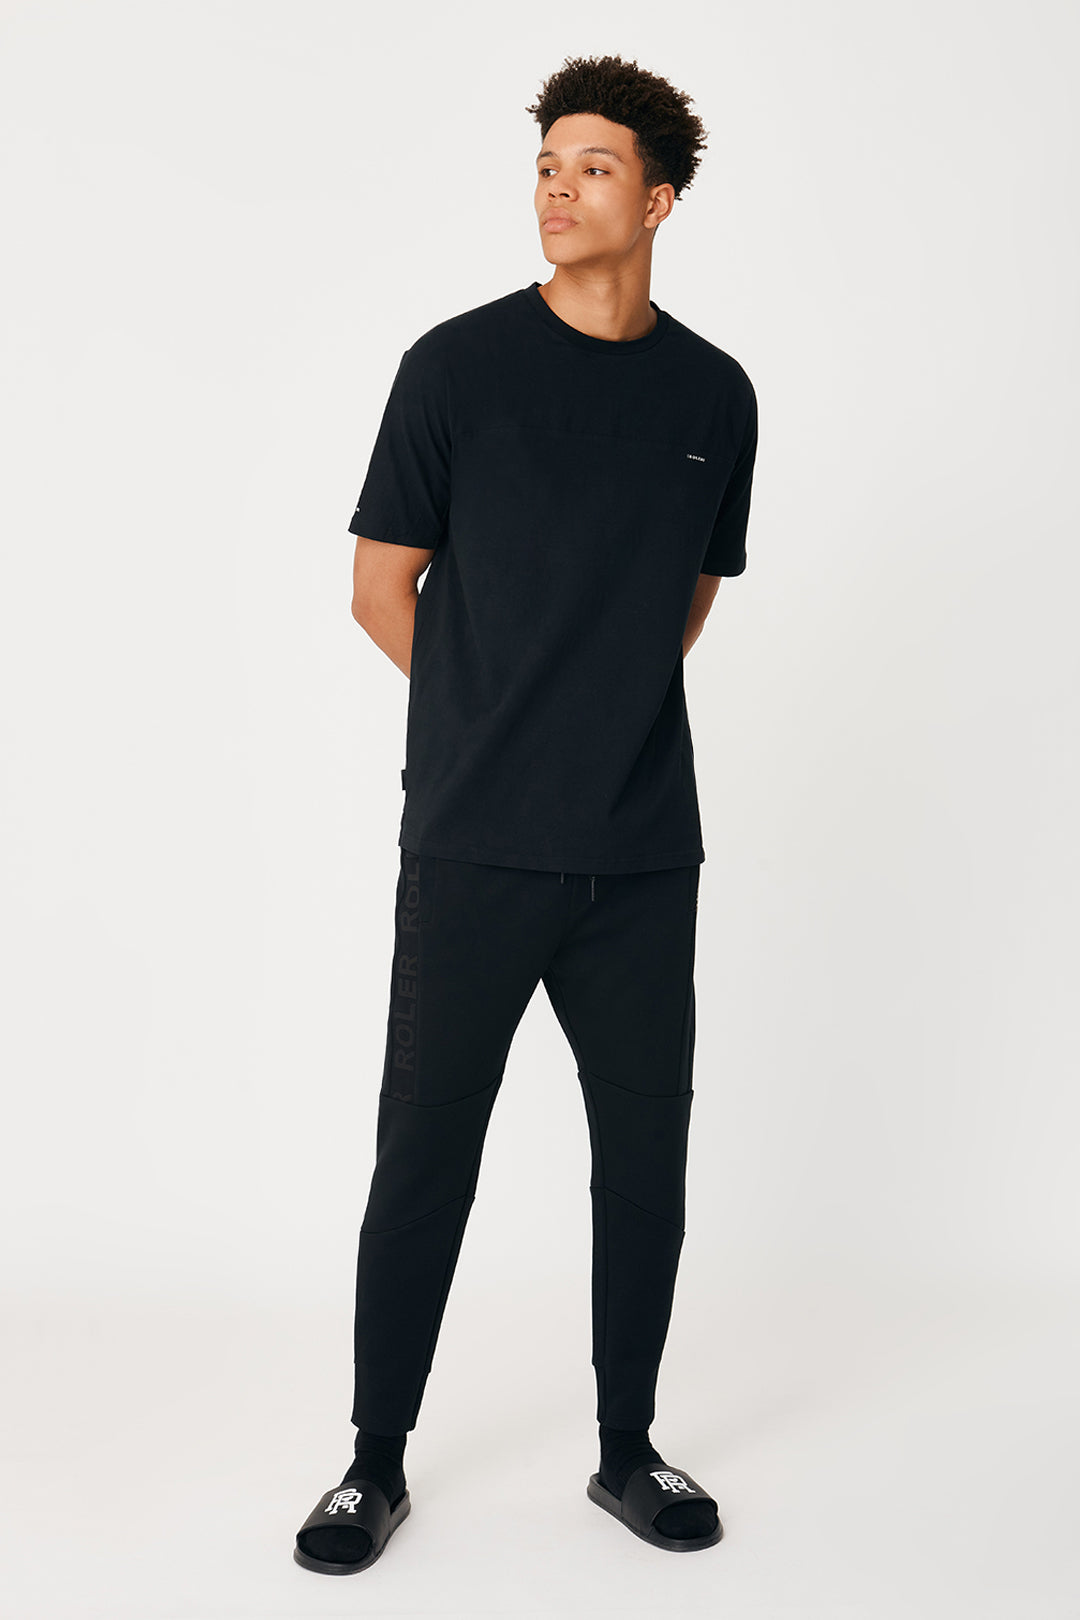 The Monza Trackie - Black - Roler Clothing